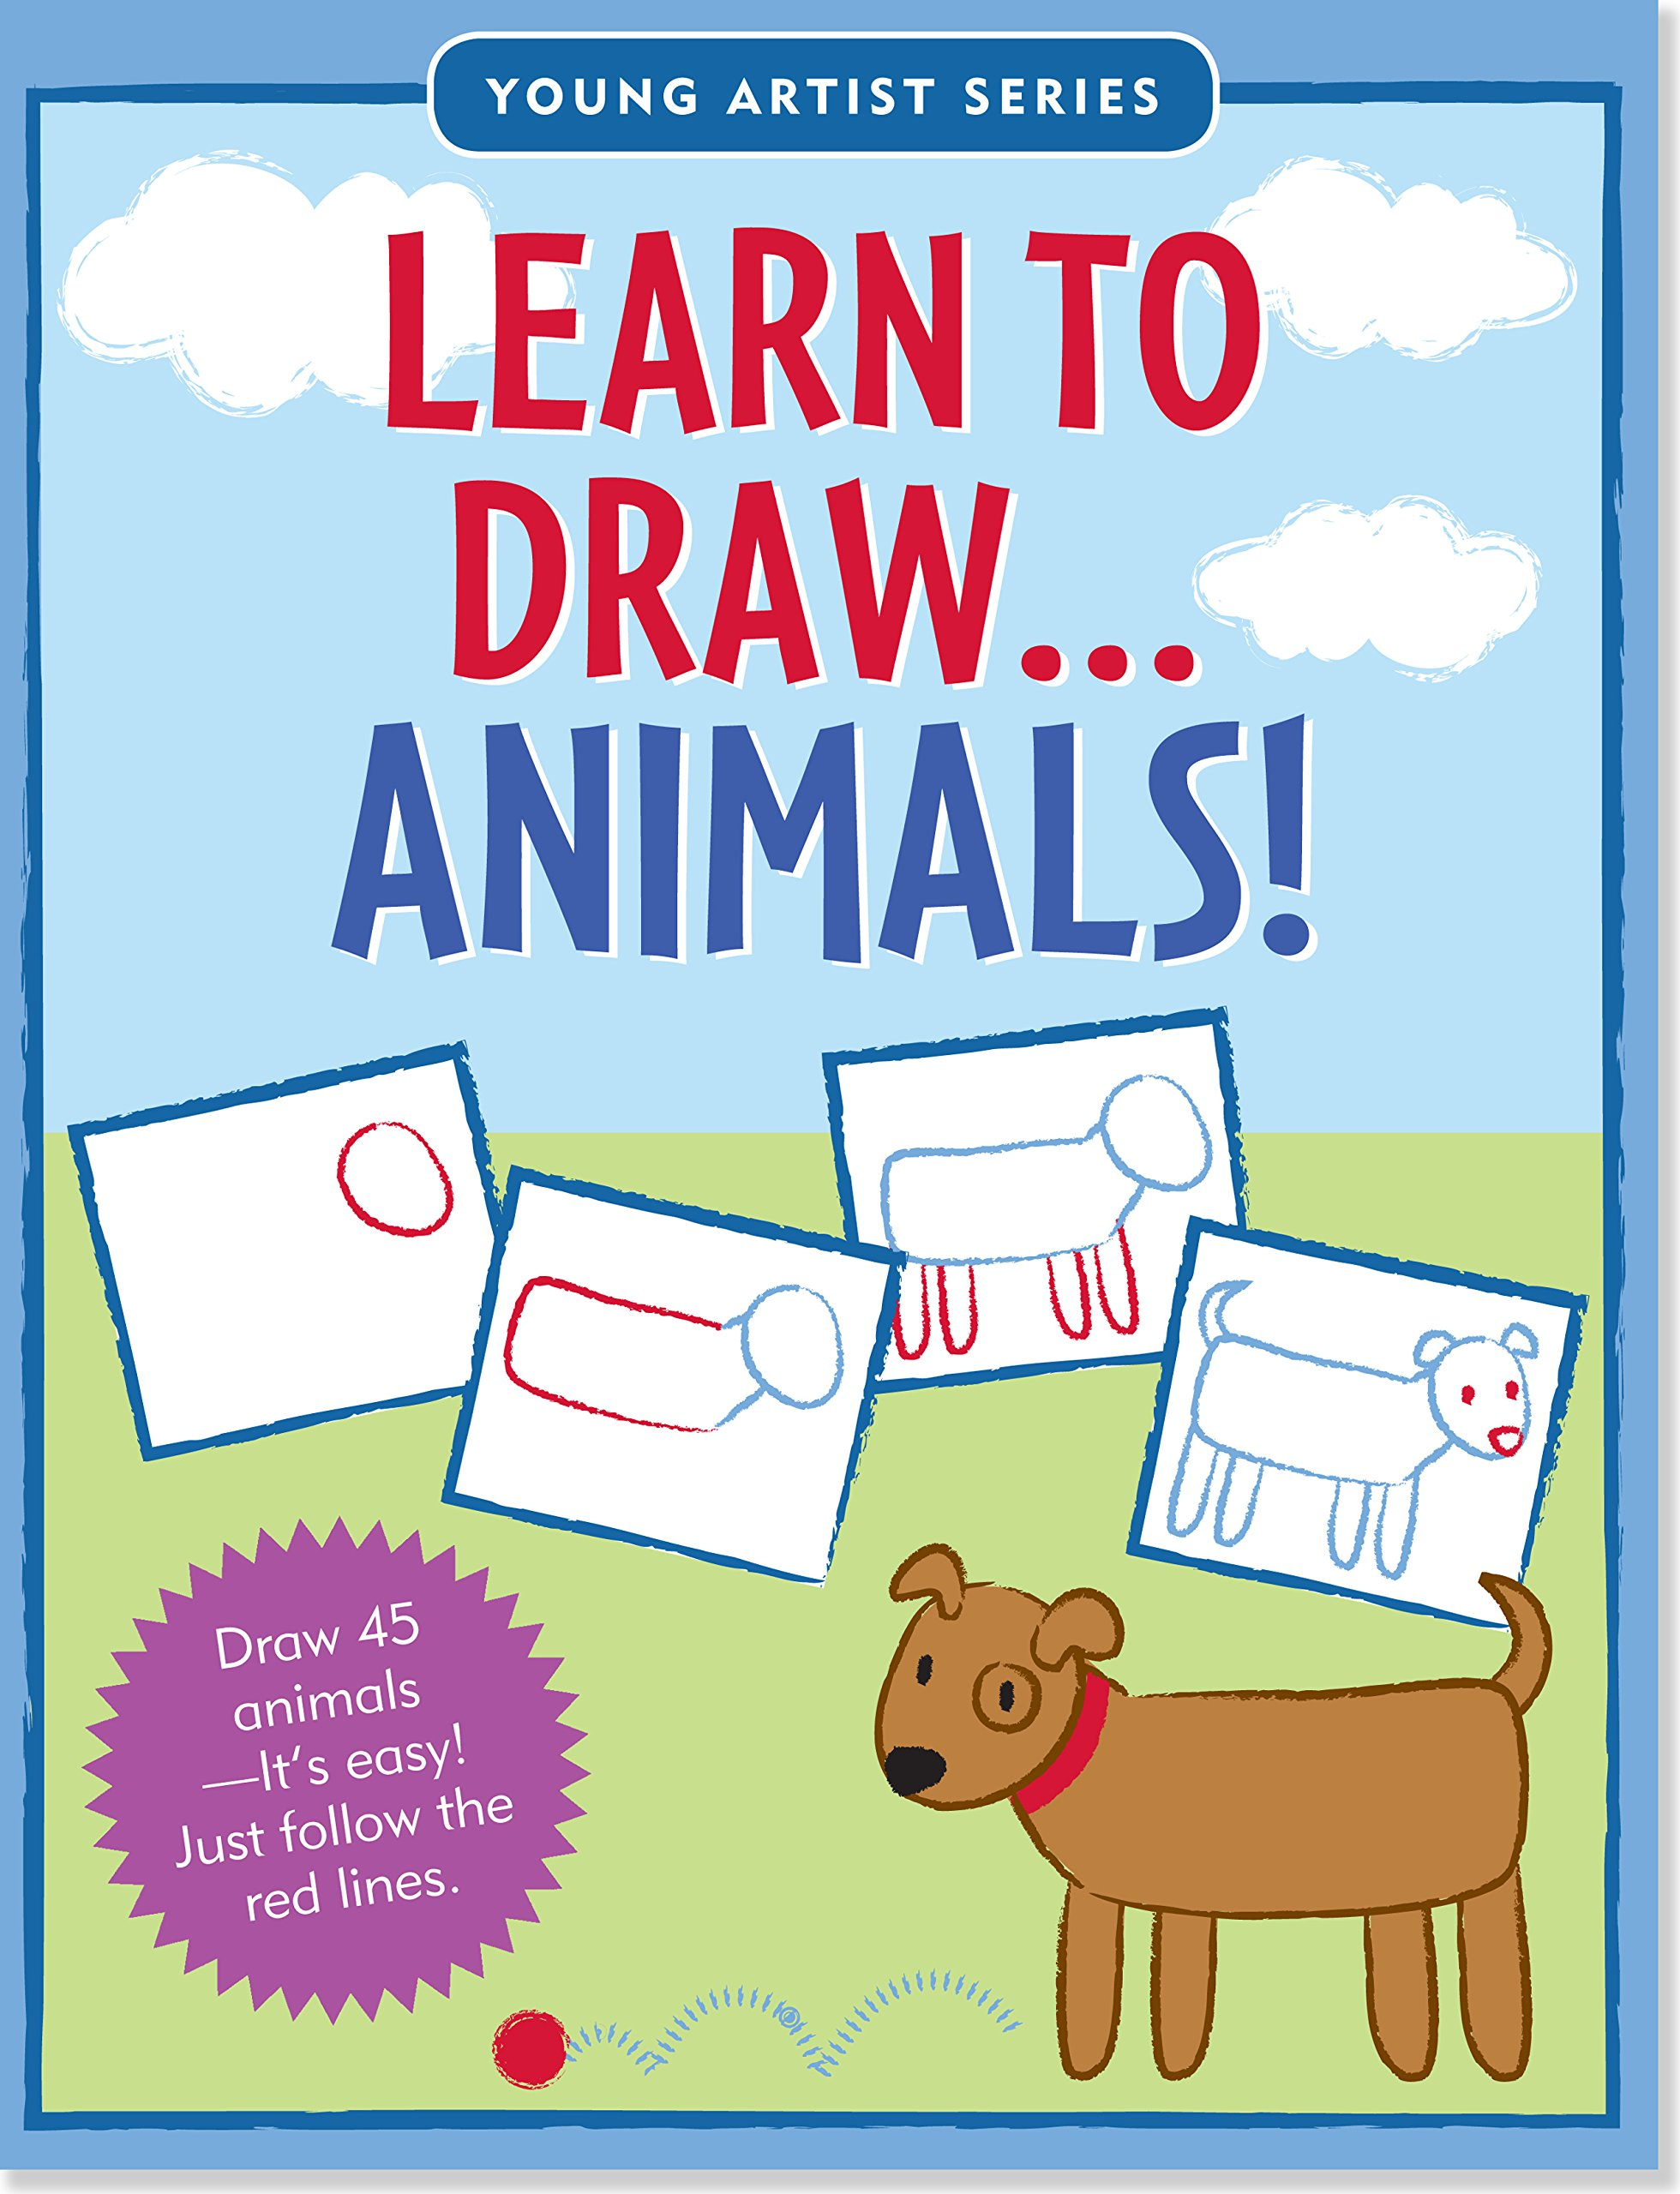 Learn Animals Step Drawing Artist product image